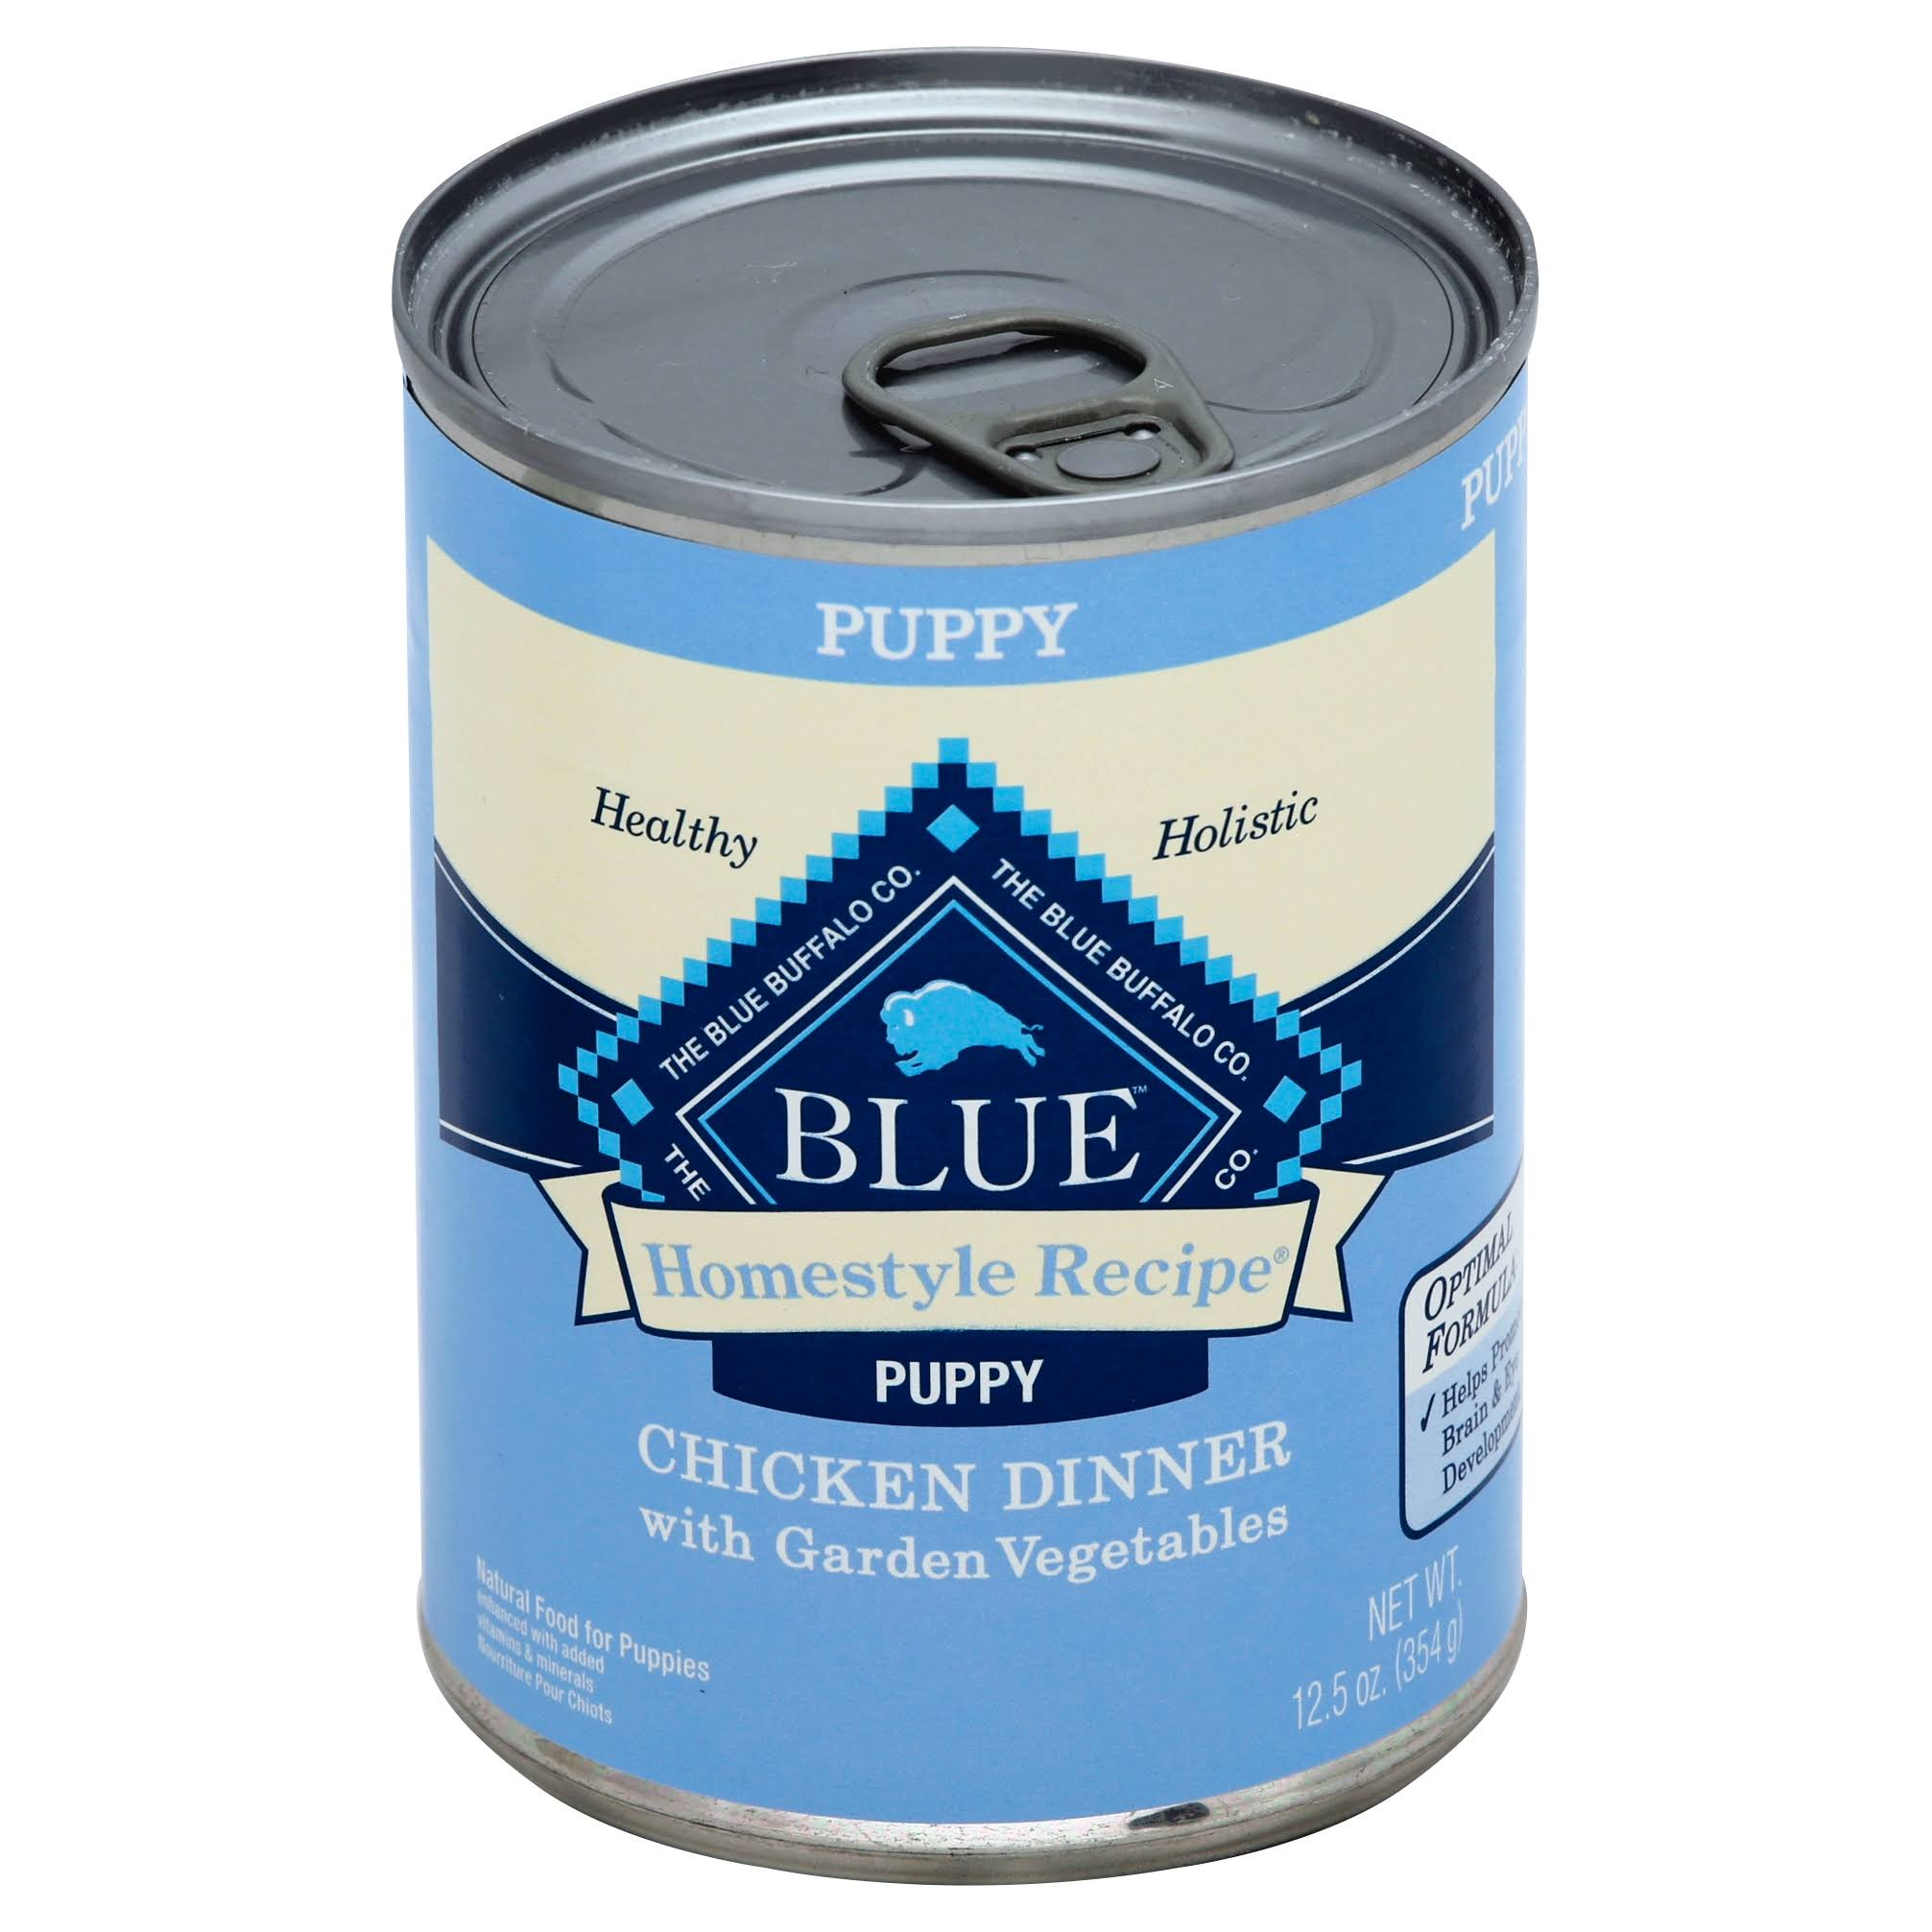 Blue Buffalo Blue Puppy Chicken Dinner - Homestyle Recipe, 12.5oz